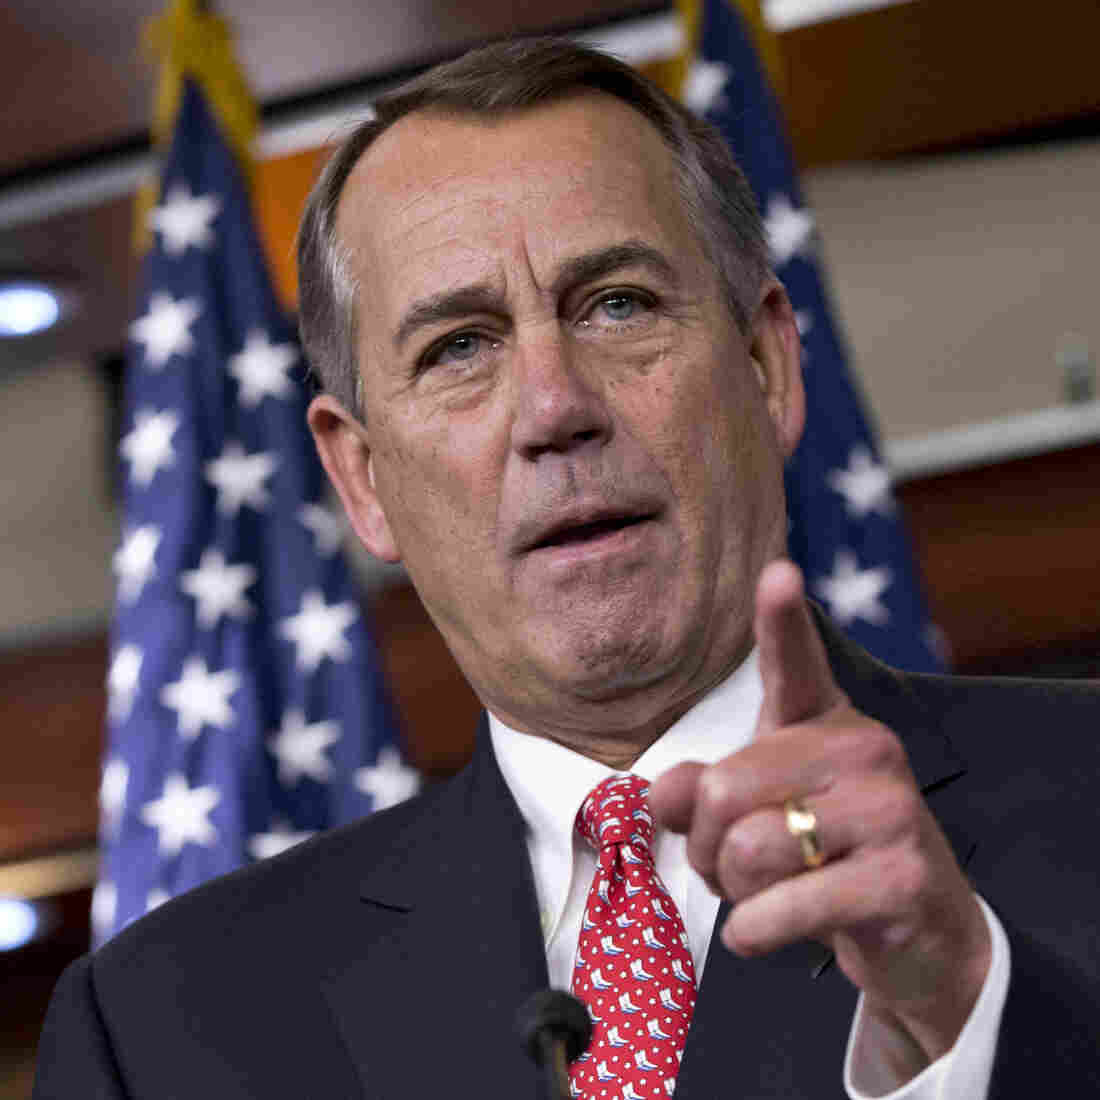 Boehner Blasts Tea Party Groups Over Budget Deal Criticism